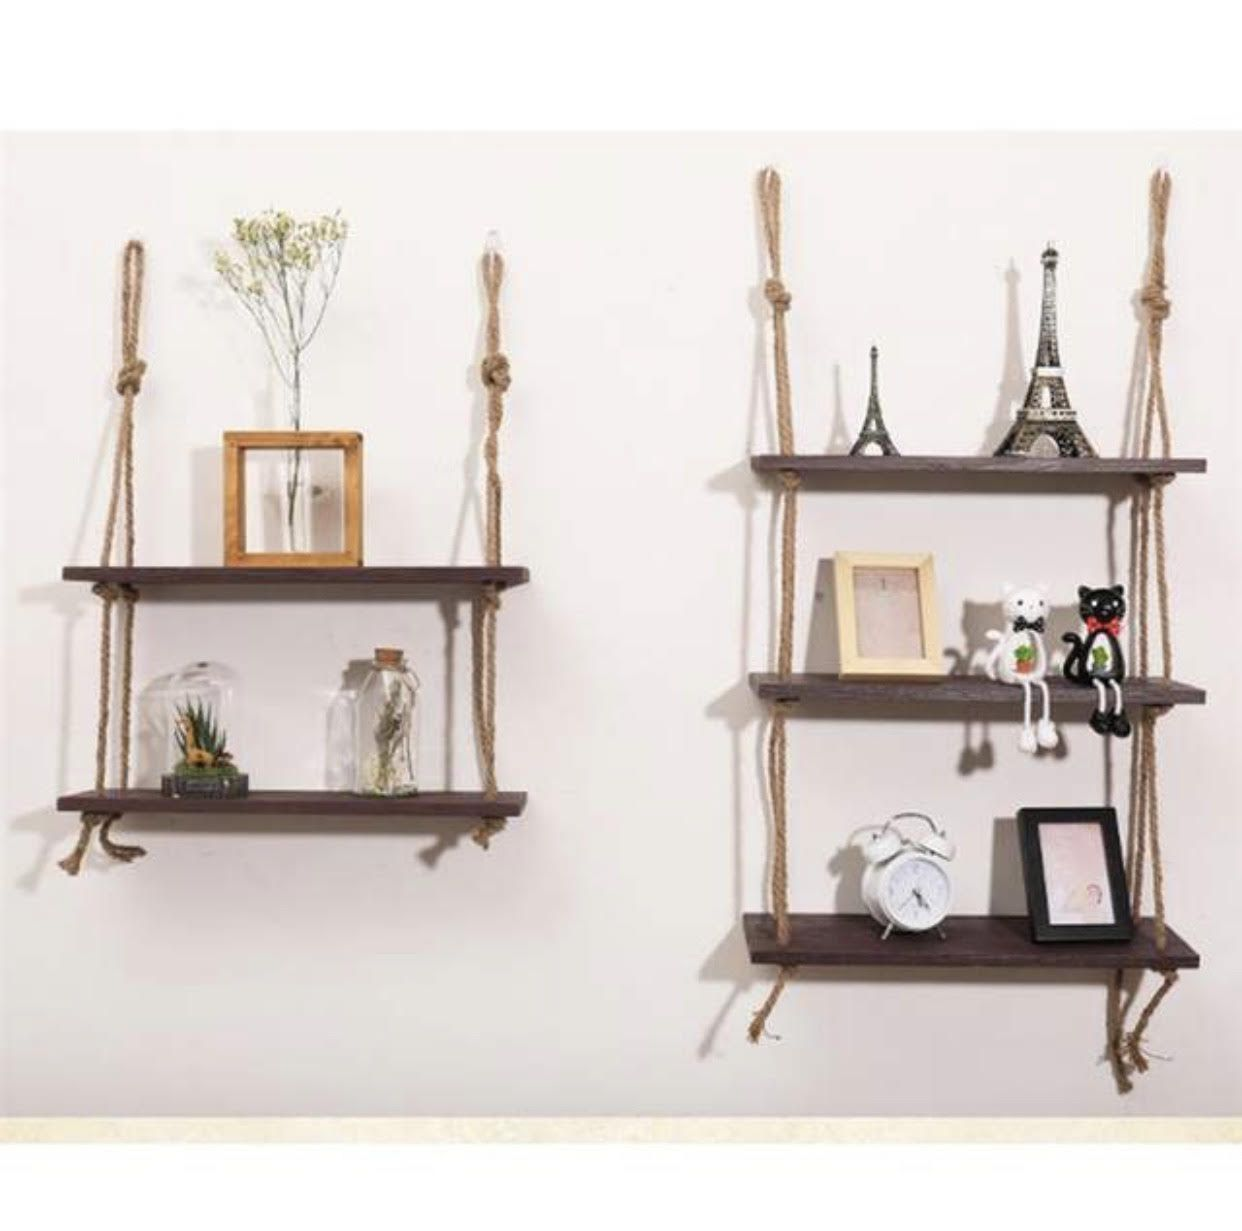 These gorgeous wood rustic wall hangings are perfect to showcase